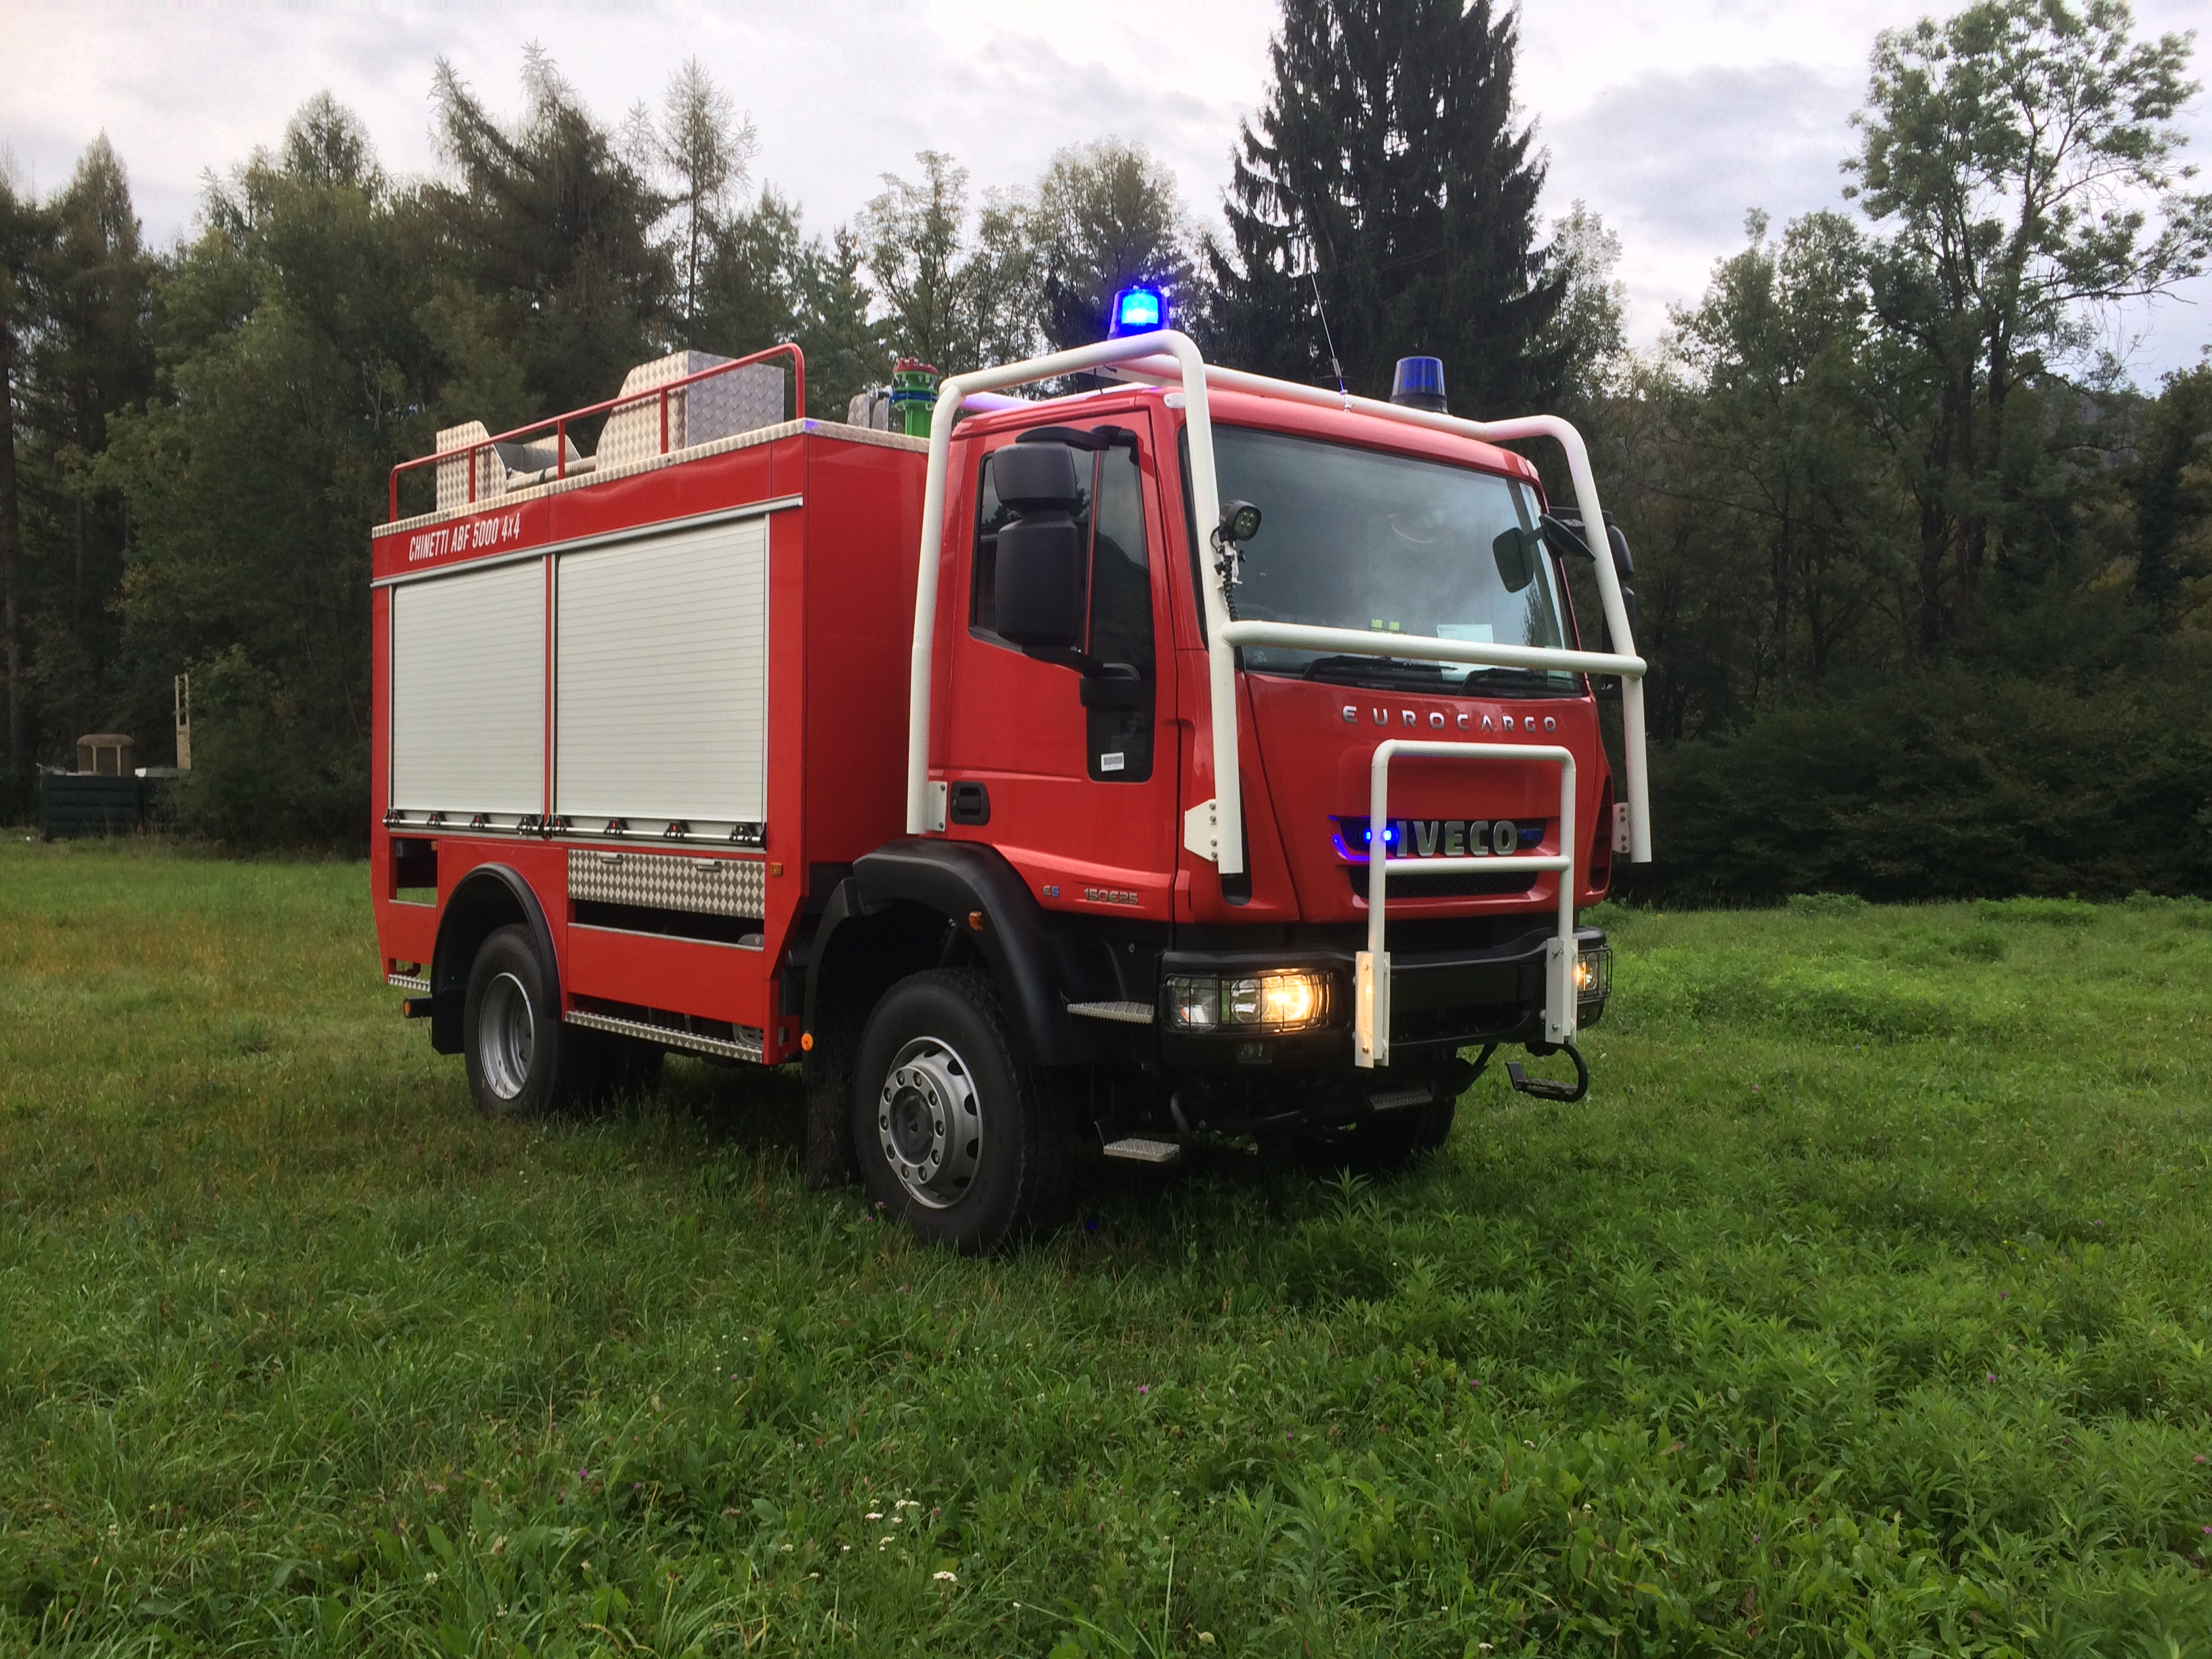 Carrozzeria Chinetti Srl Italy Fire Truck Schematic Category Civil Protection Forestry Model Abf 5000 4x4 Chassis Iveco Eurocargo Ml150e25w